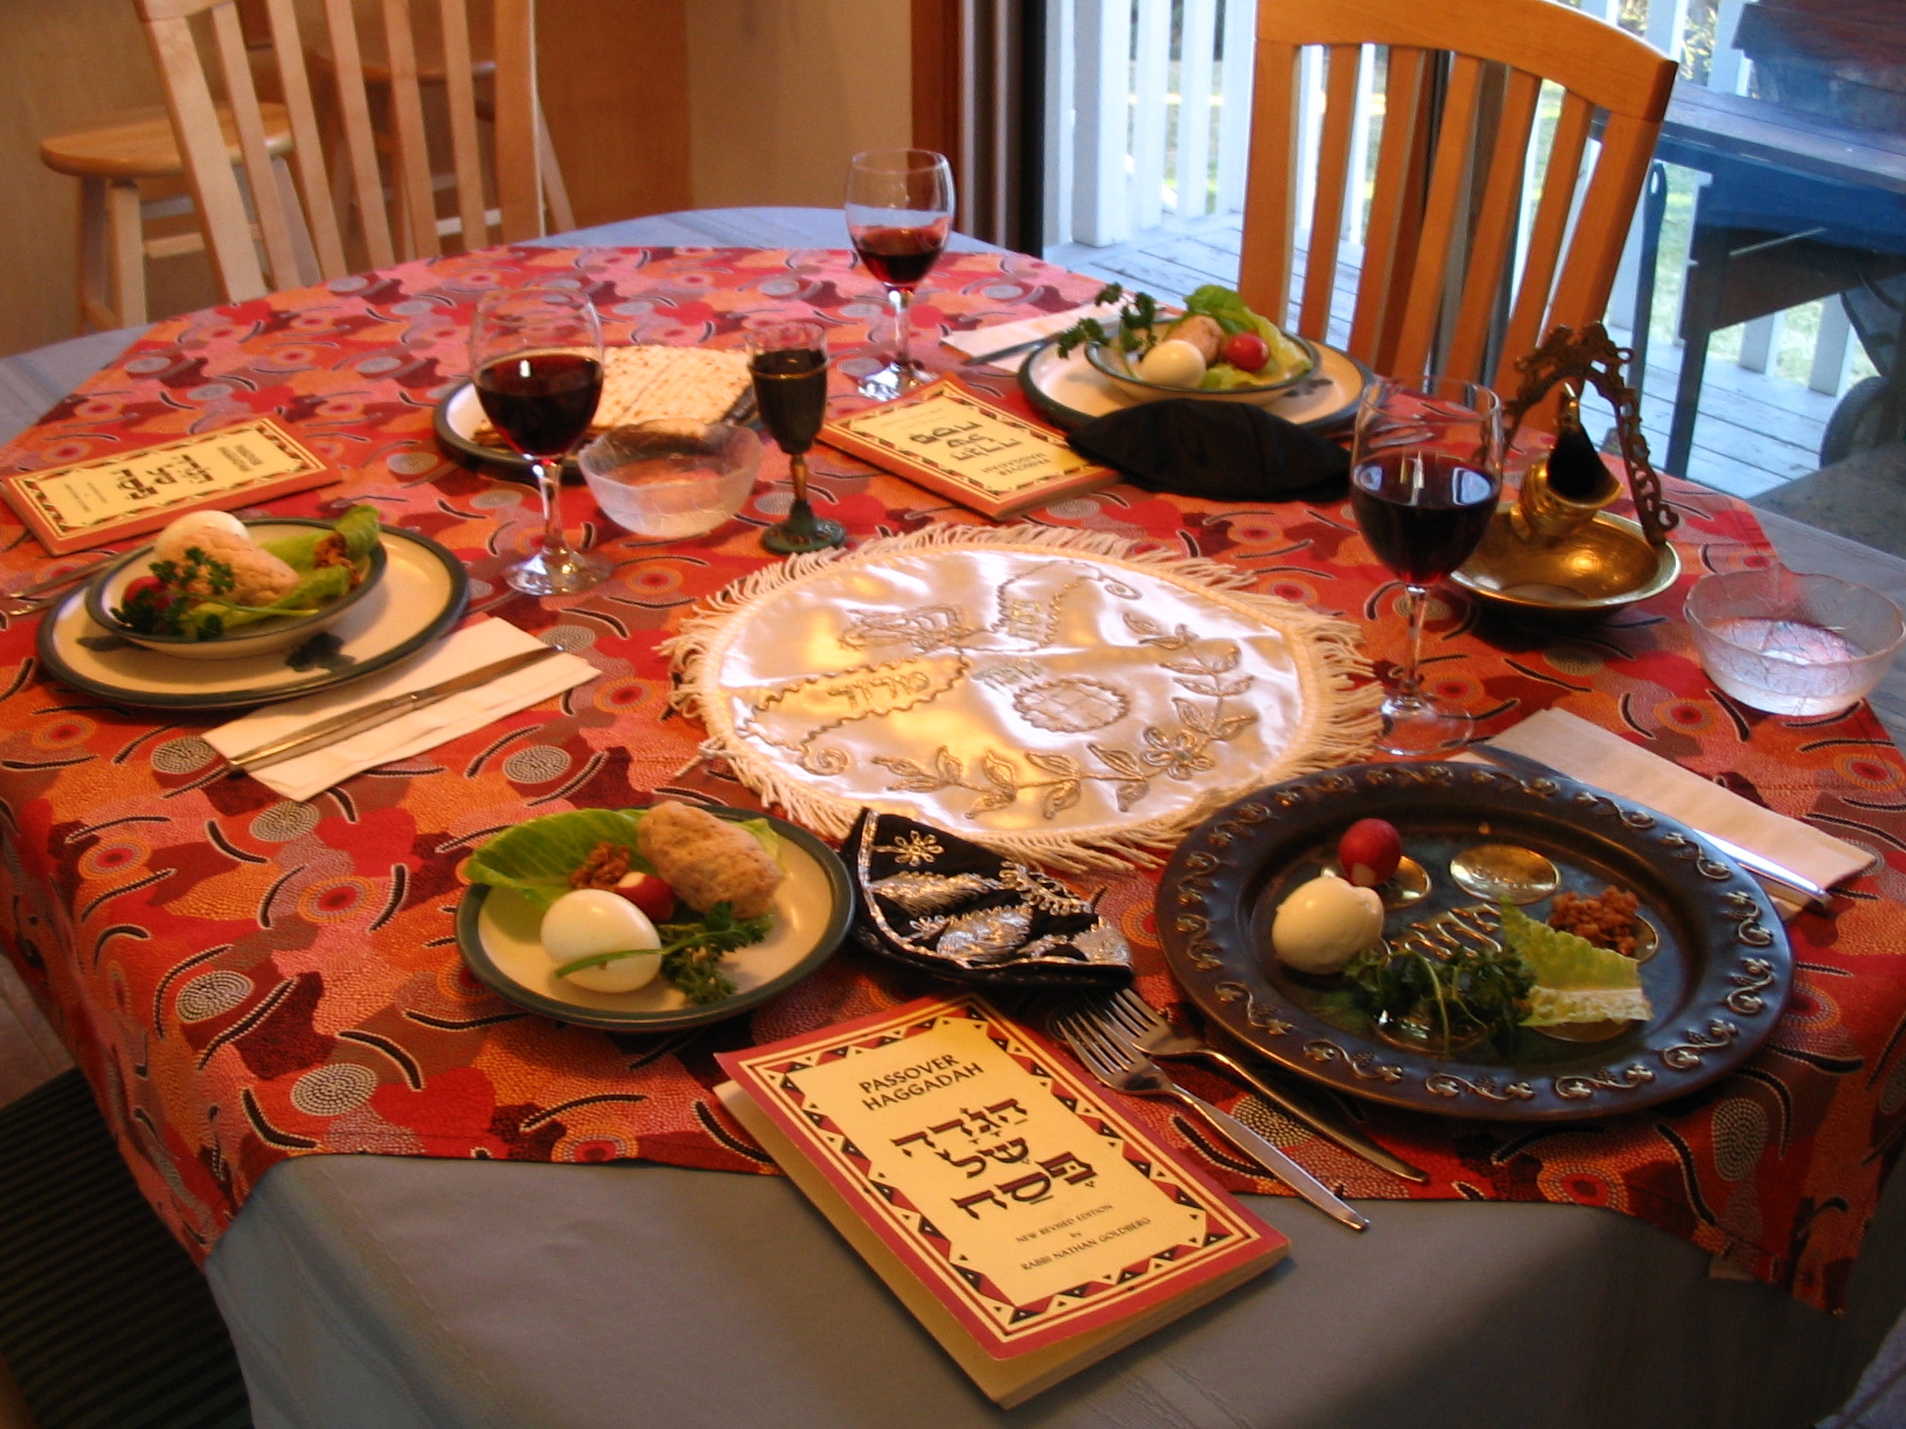 Traditional Passover Seder table setting